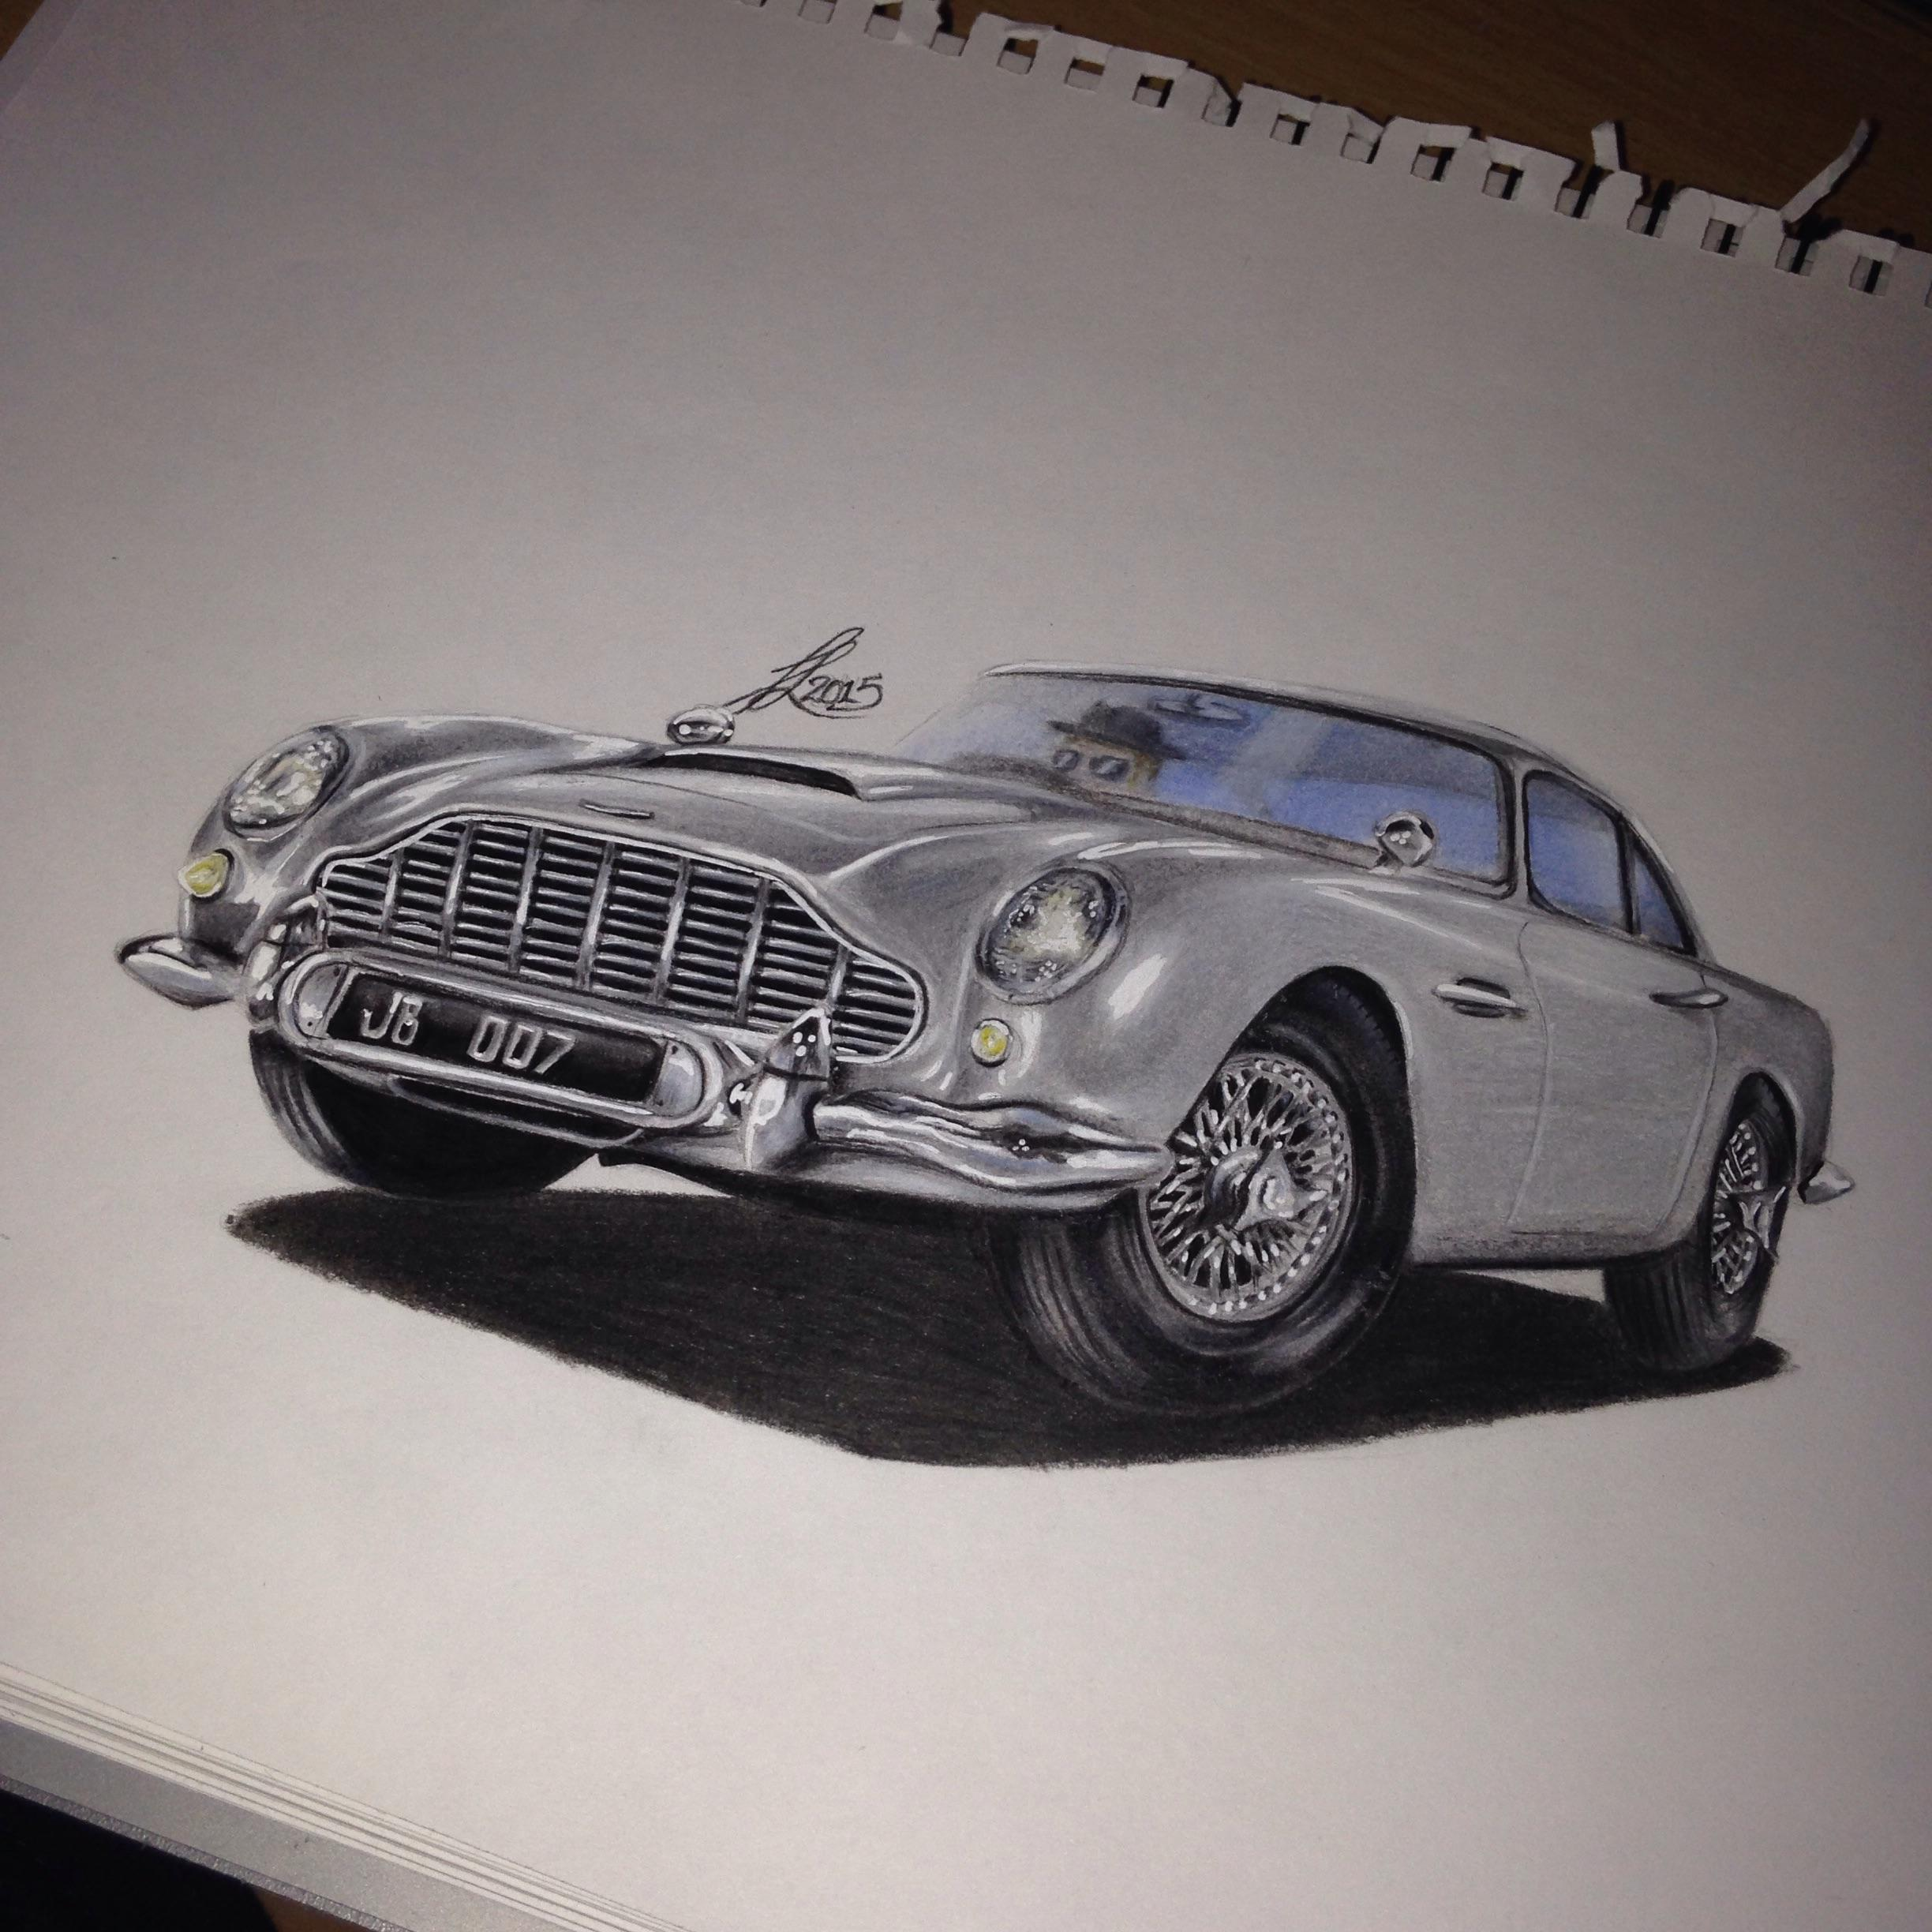 Newly Finished Aston Martin Db5 Drawing Any Comments Are Appreciated As Always Check My Instagram For More Jtl B